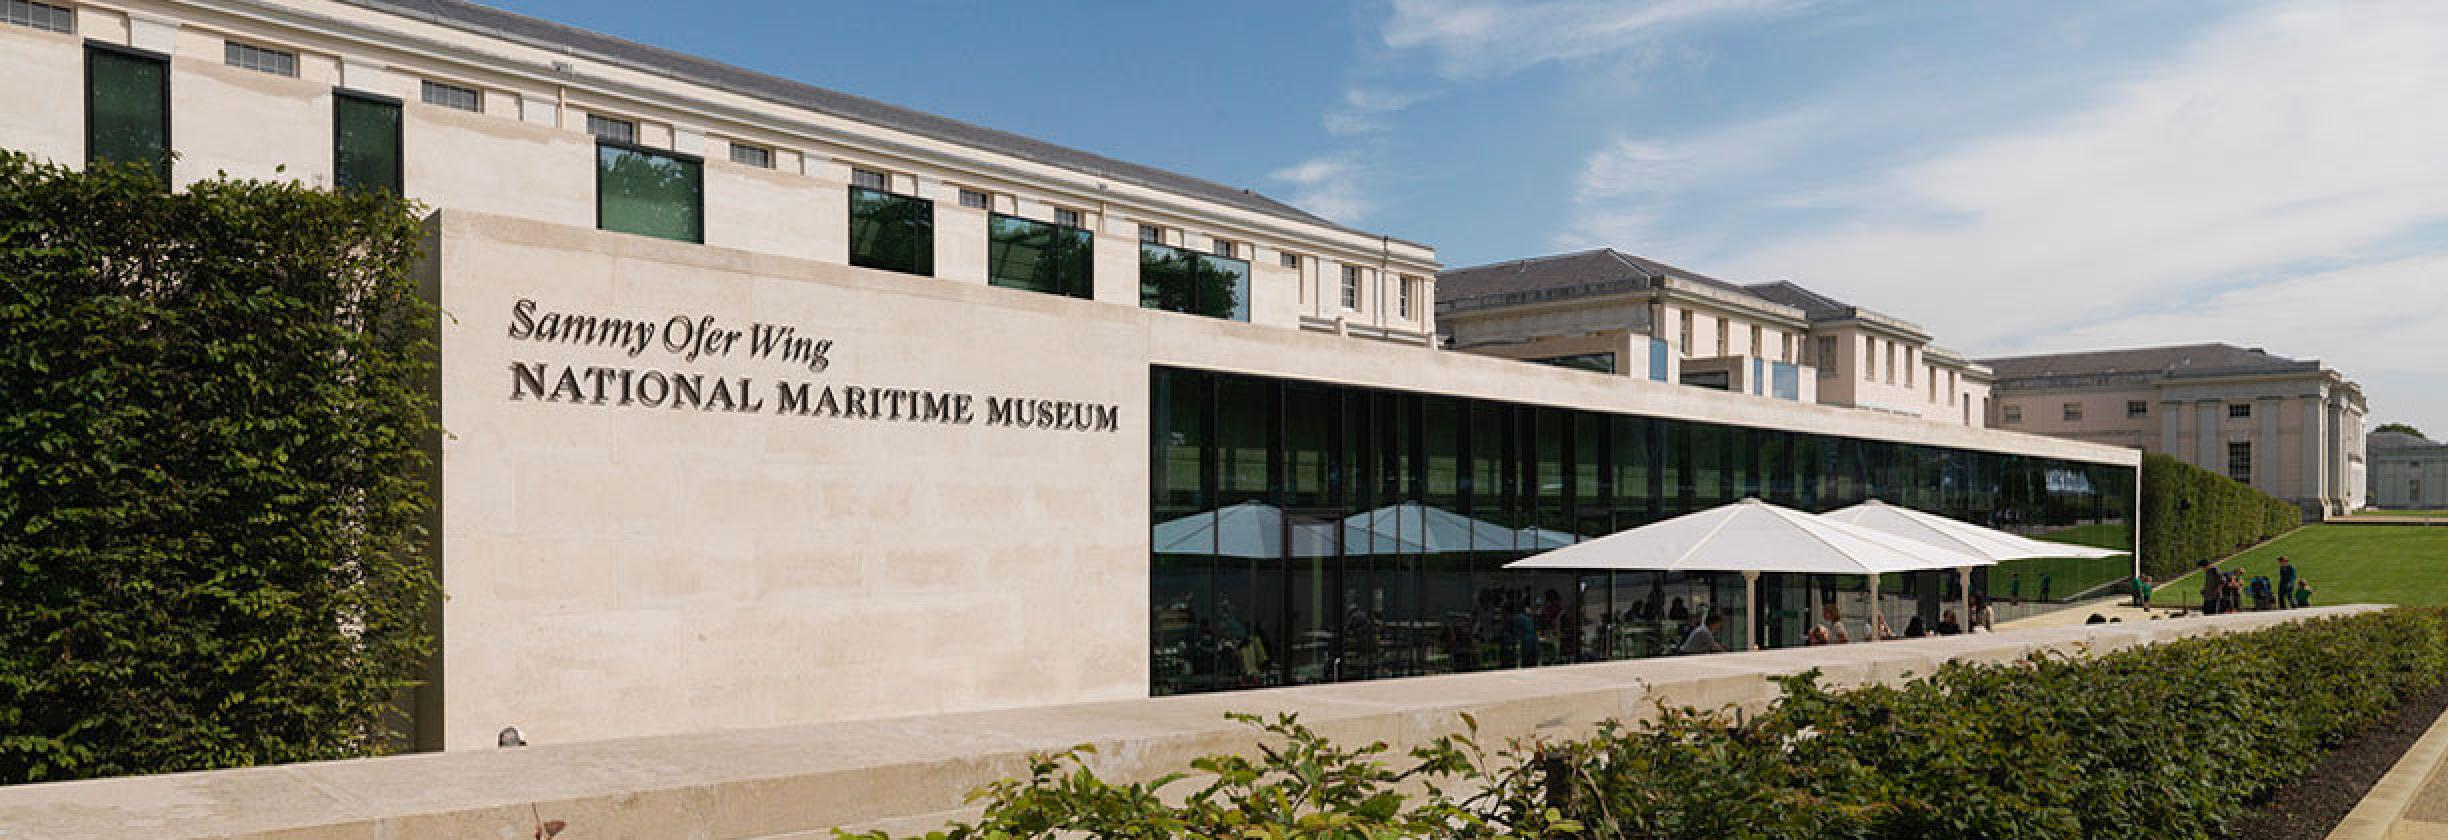 National Maritime Museum London, National Maritime Museum tickets & prices | Royal Museums ...